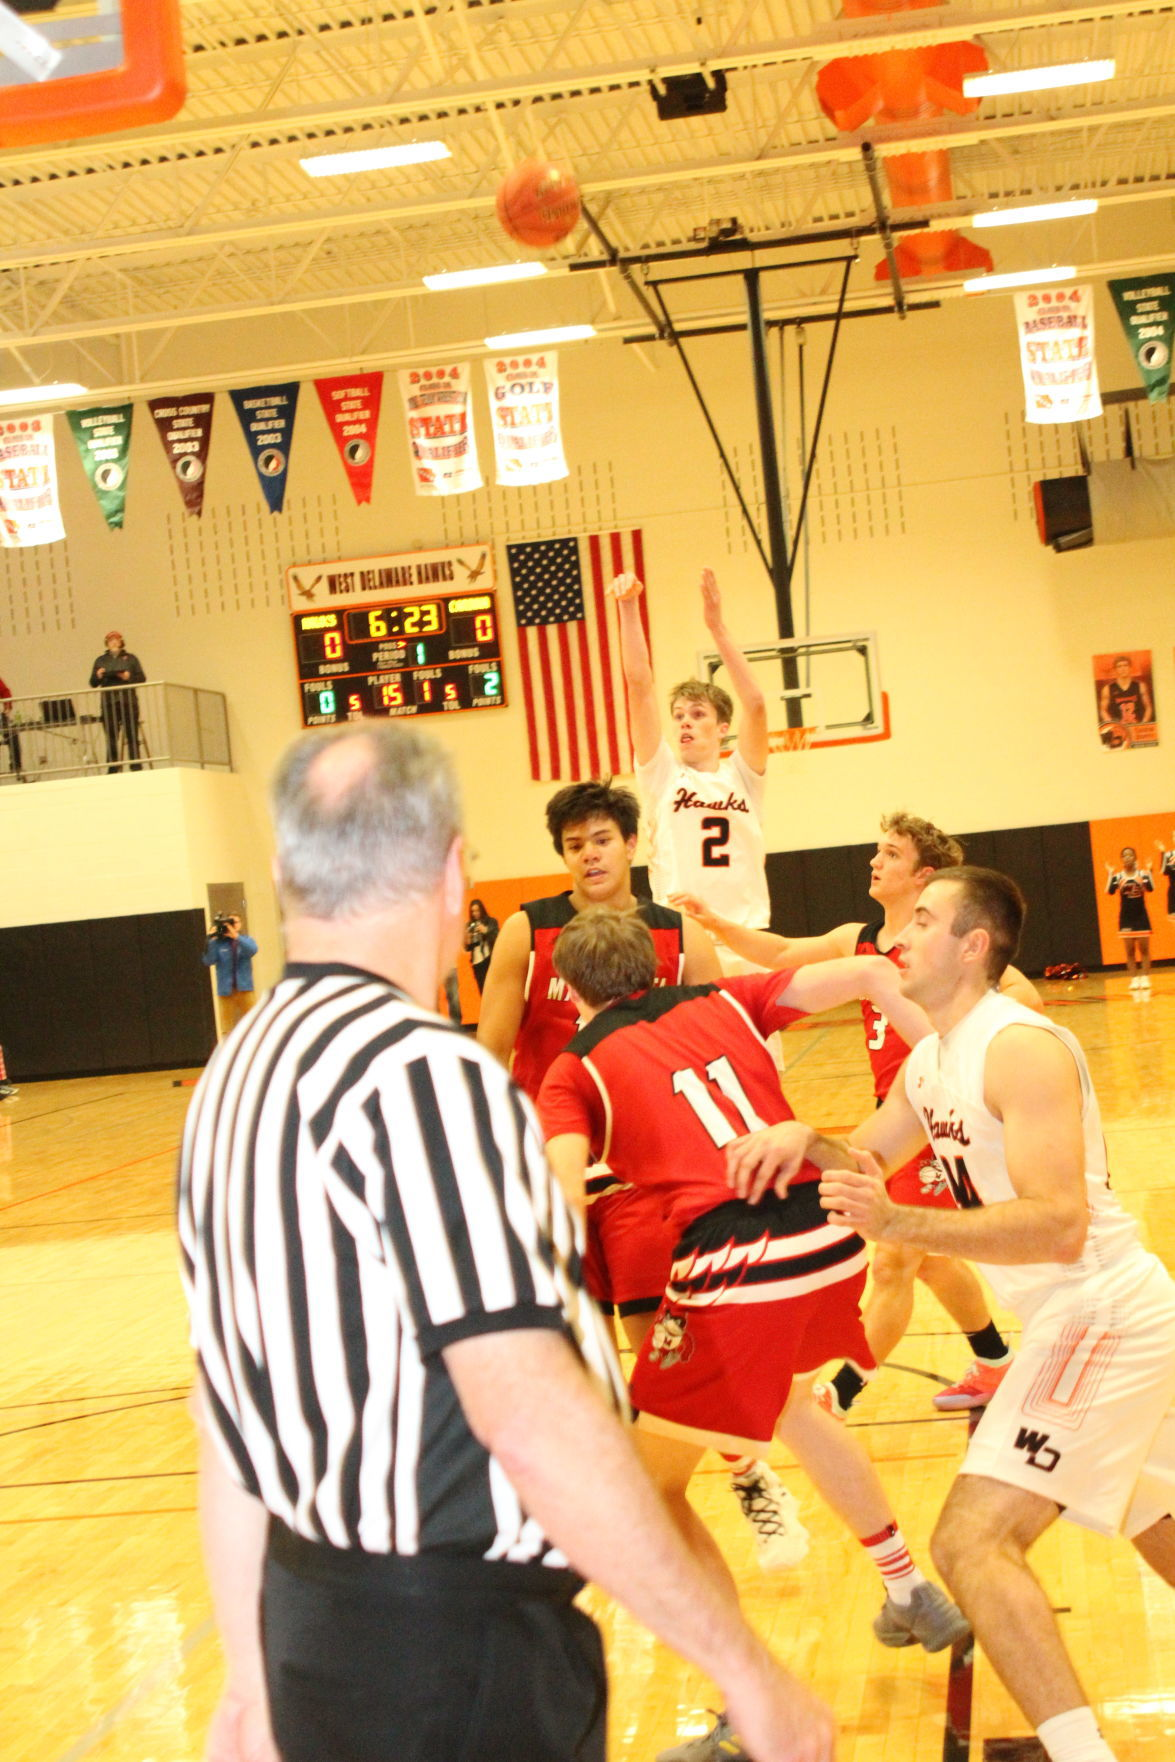 Kyle Kelley takes a shot from the top of the key against Maquoketa. The Cardinals handed the Hawks their first loss of the season, defeating them 40-35.